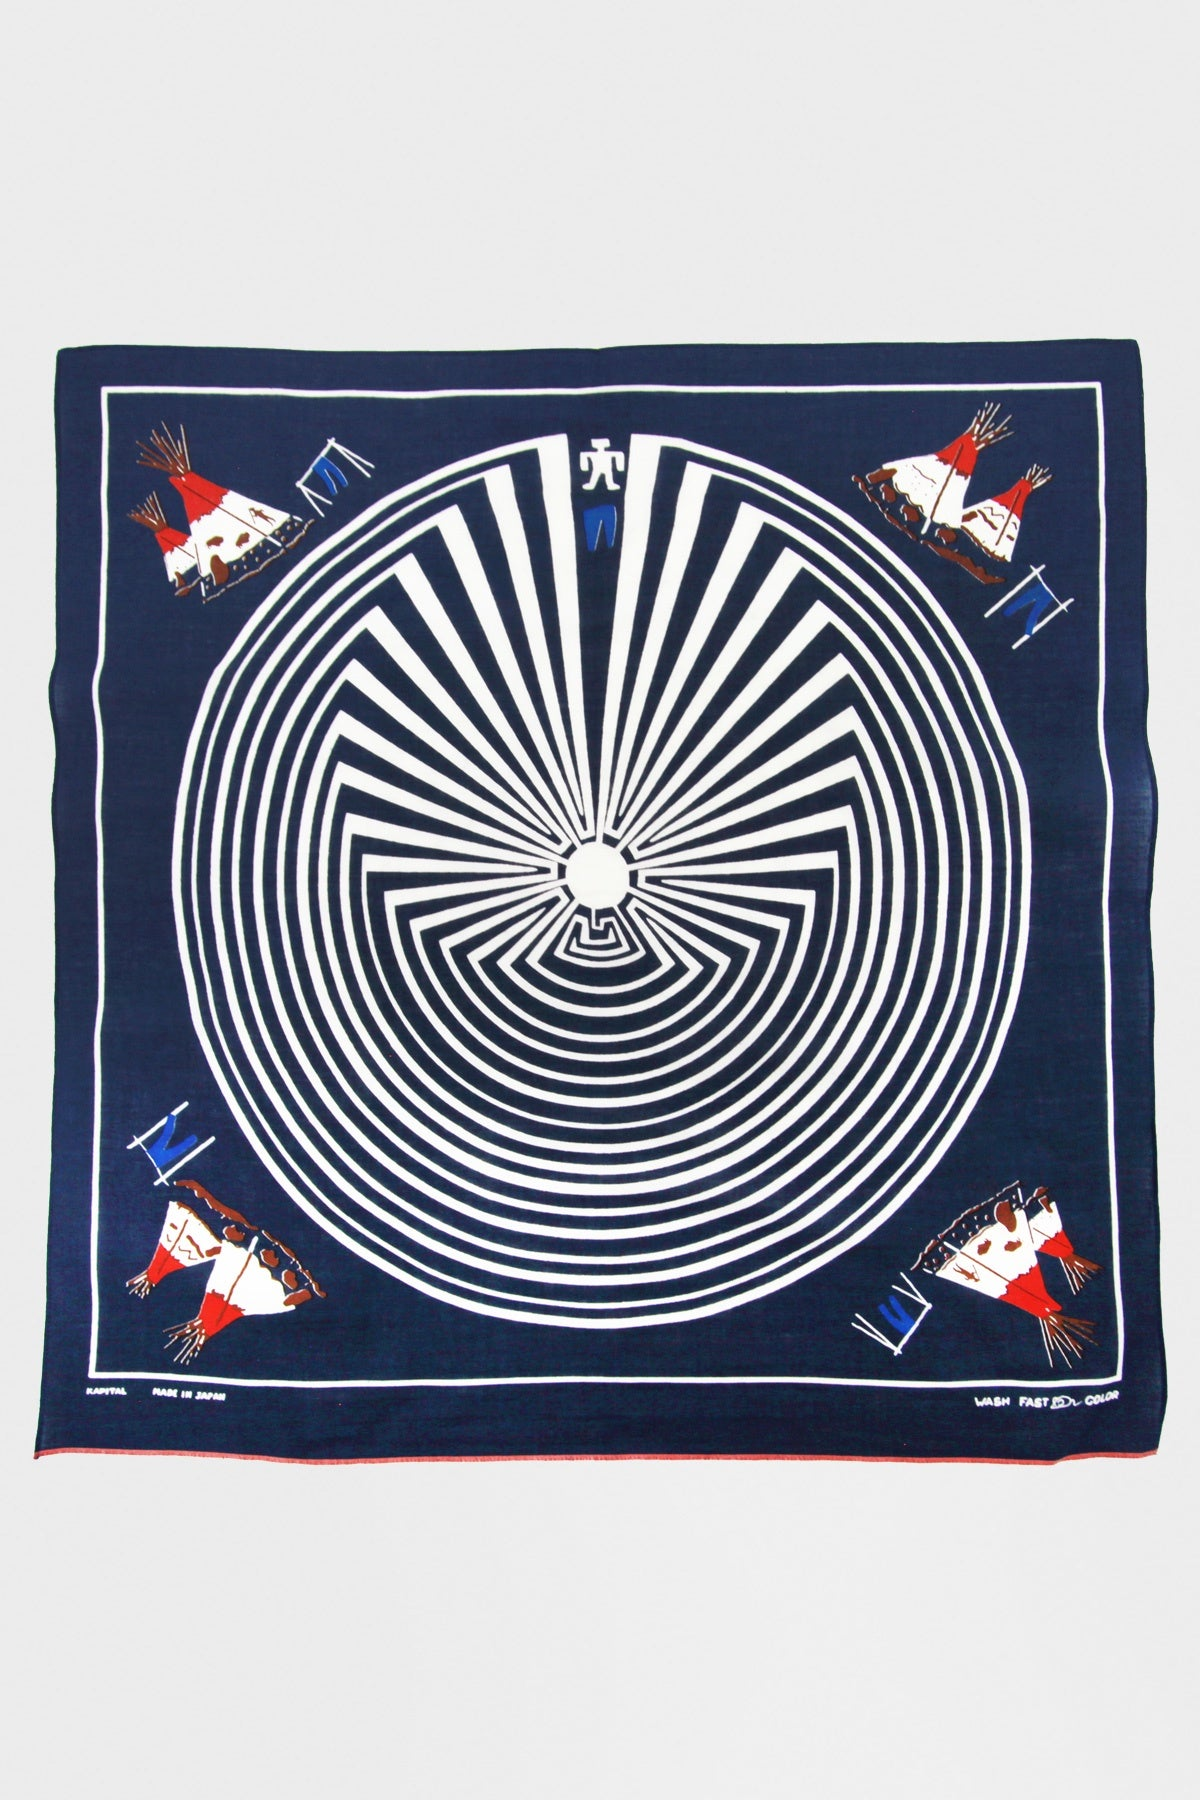 kapital Fastcolor Selvedge Bandana (DENIM MAN IN MAZE) - Navy